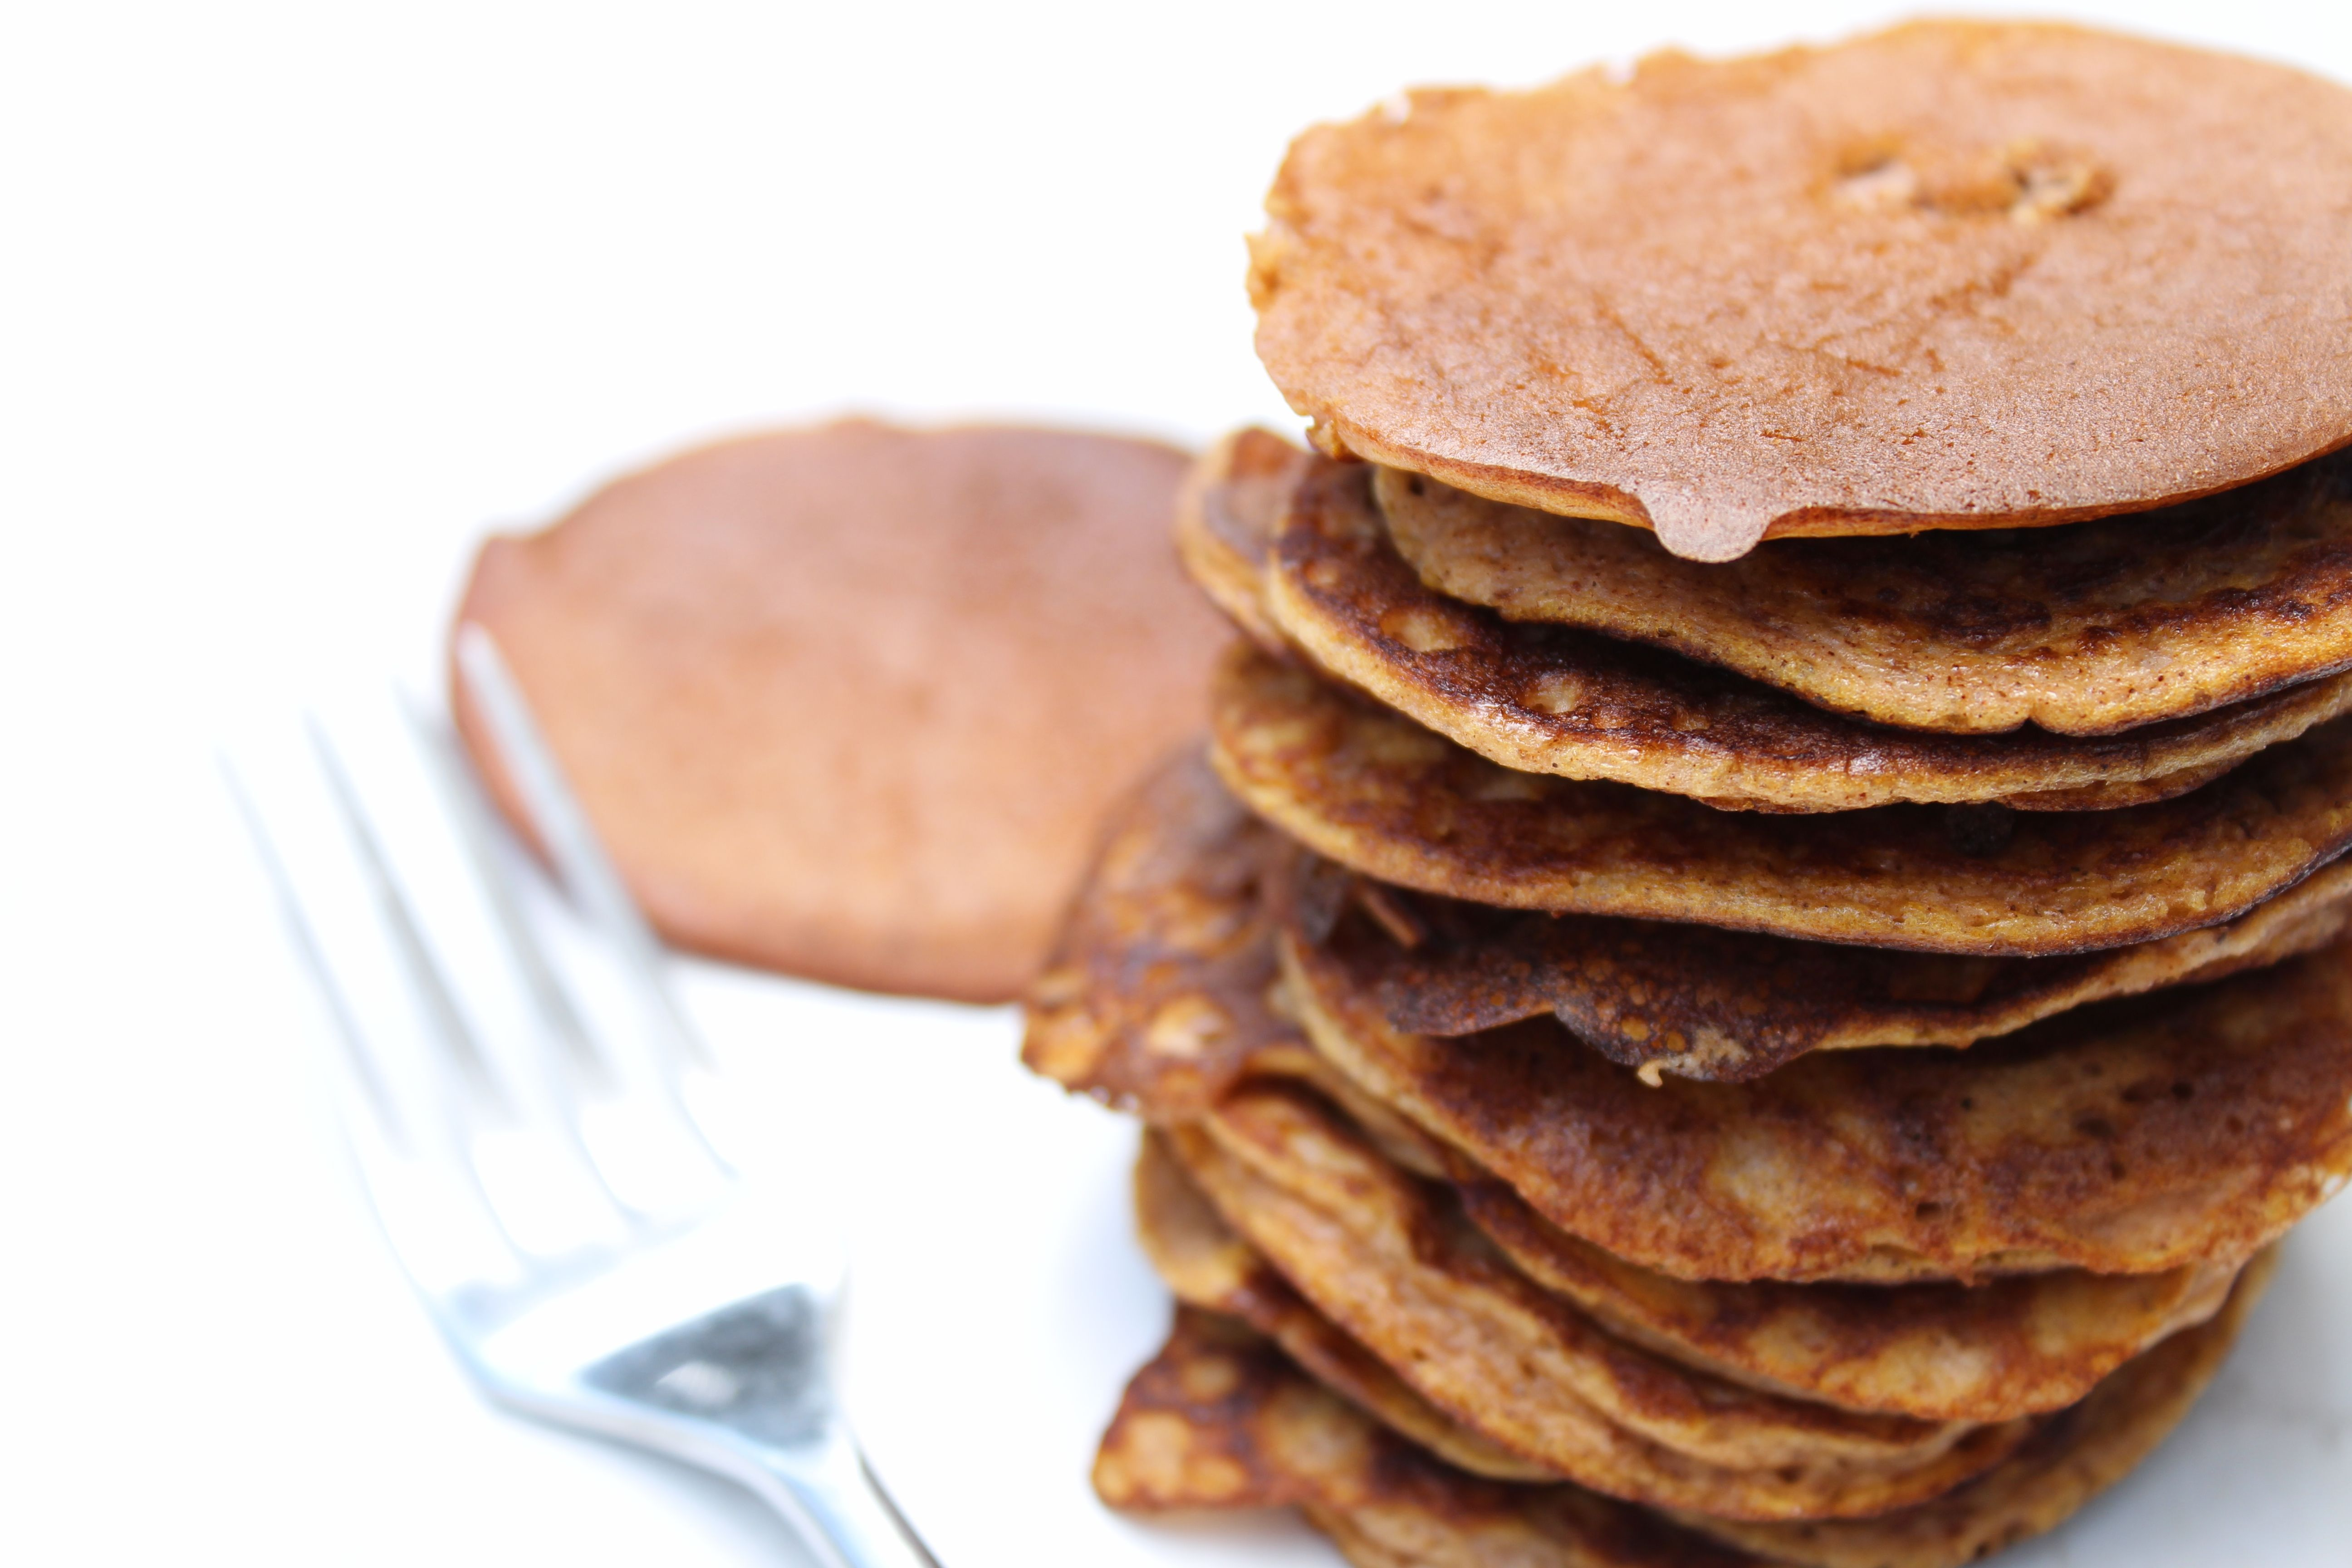 Grain-free Pancakes & the GAPS Diet